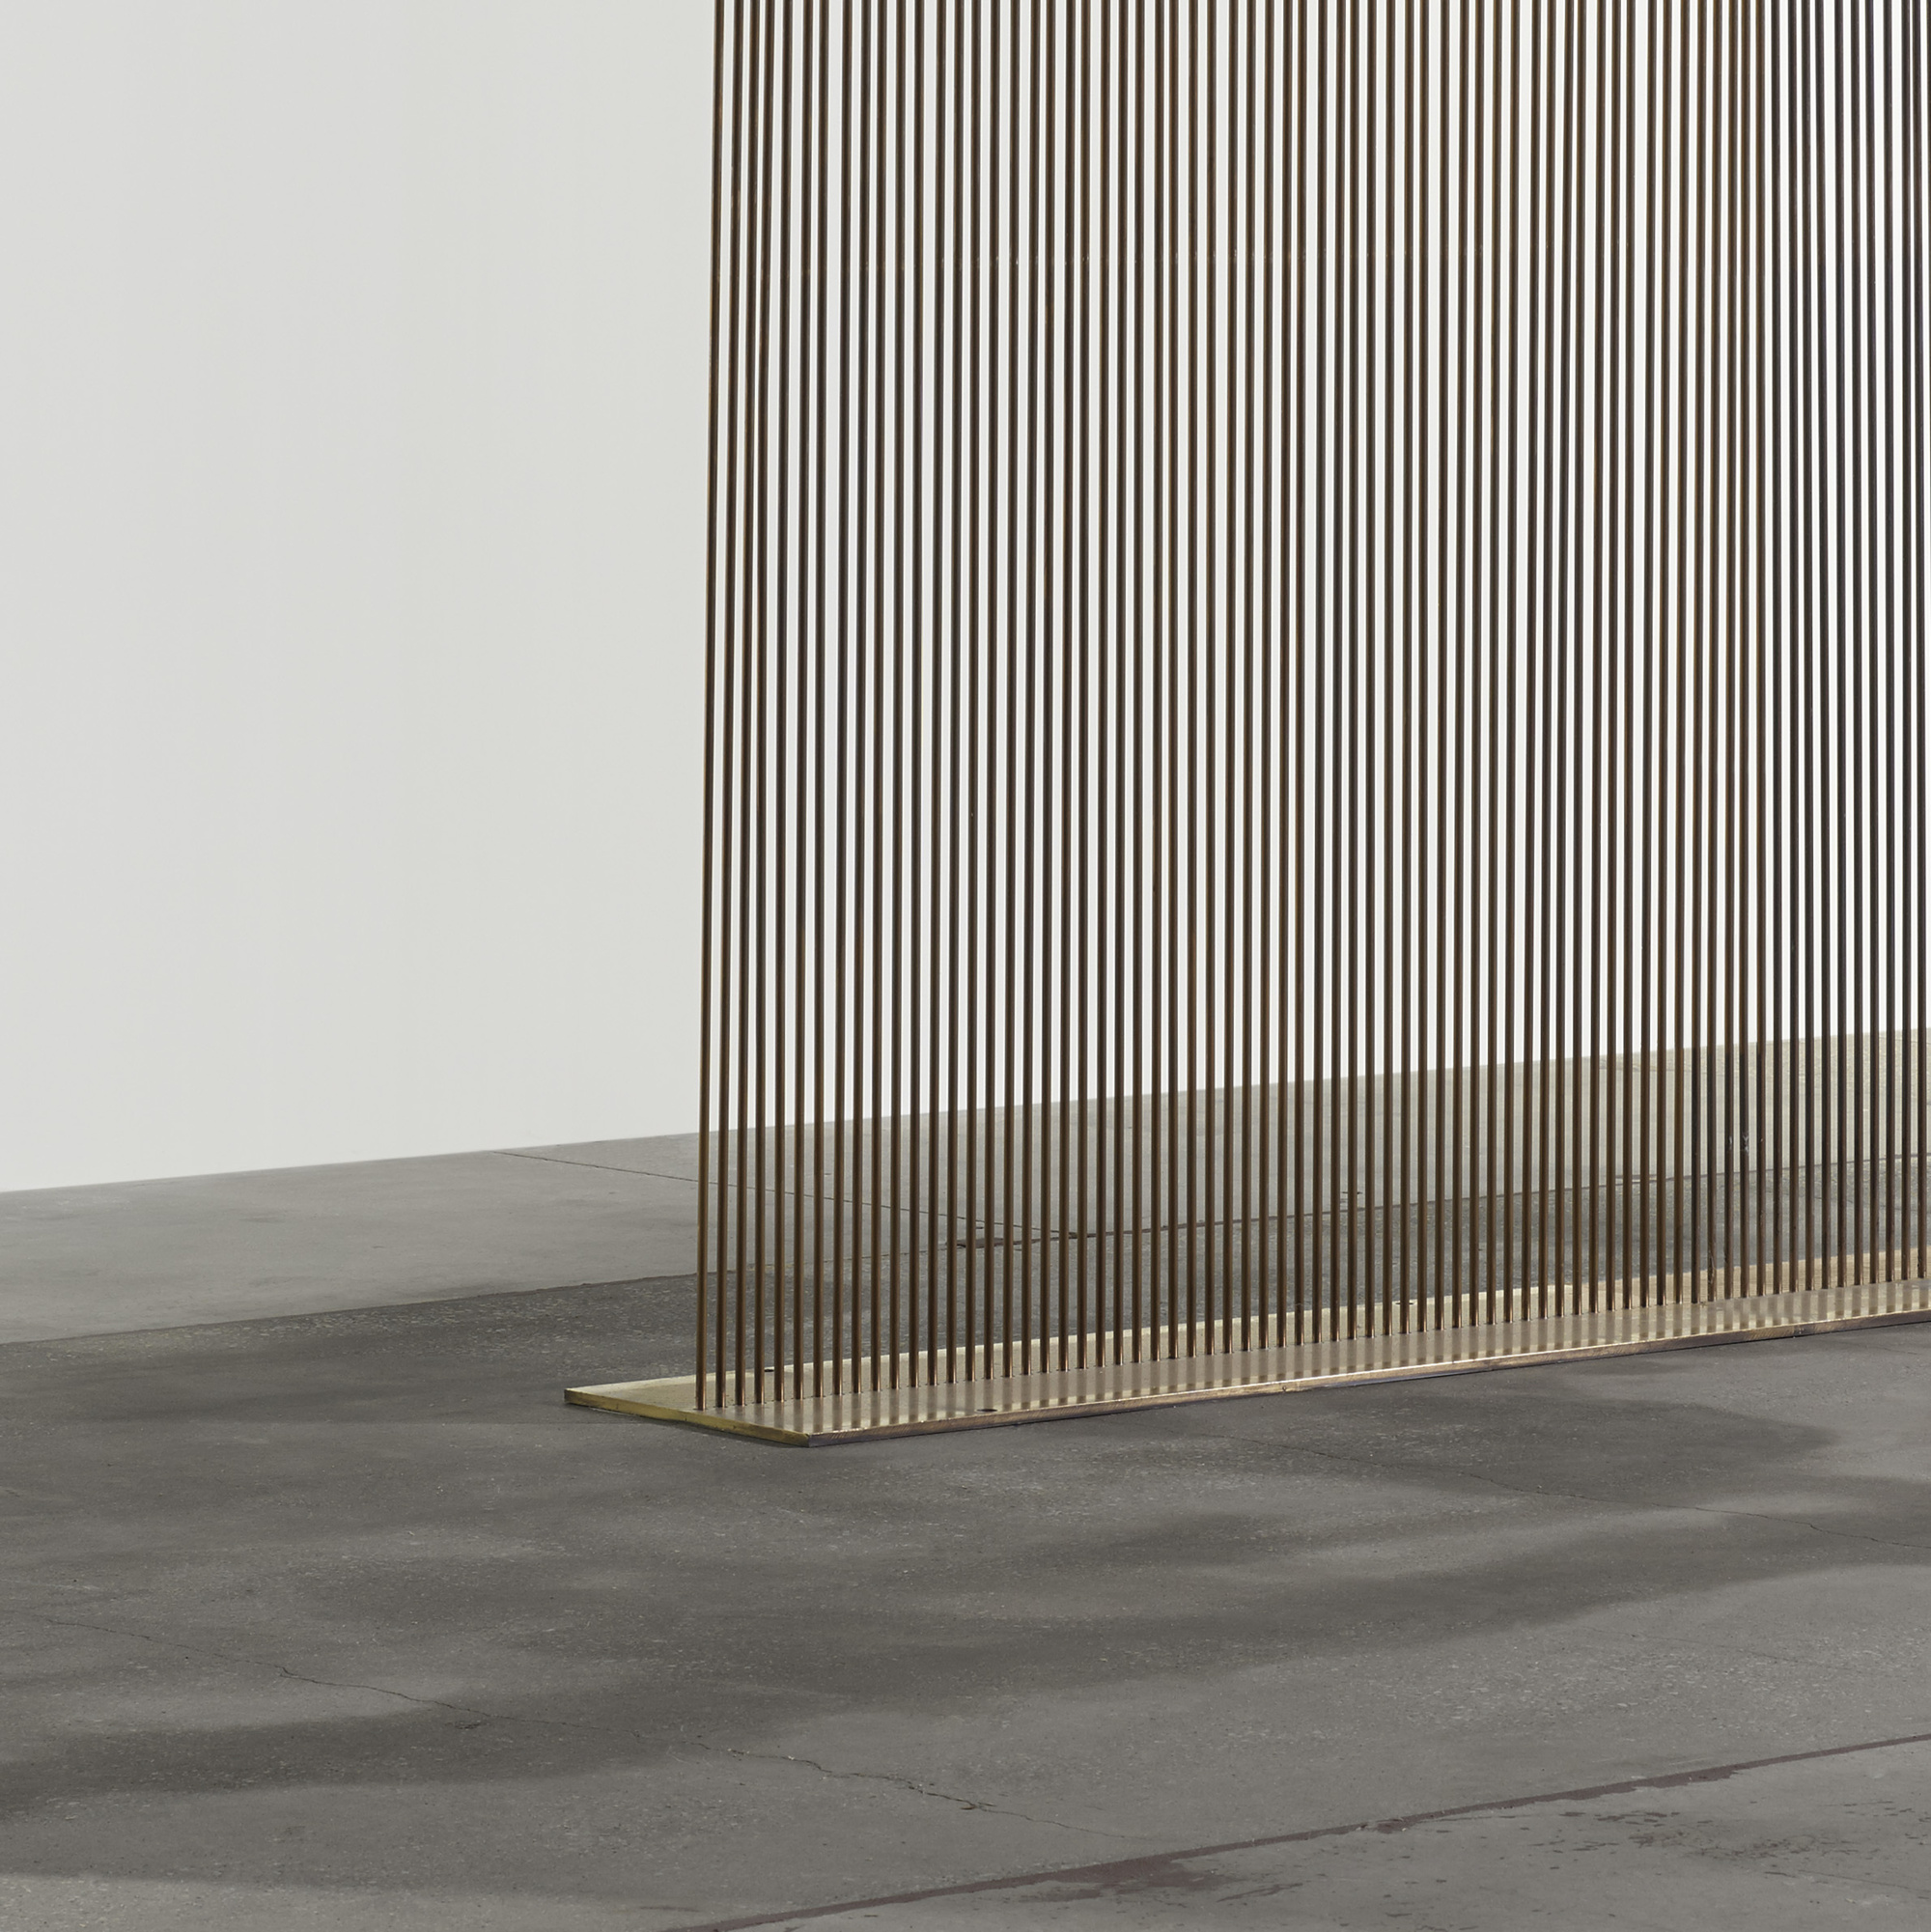 30: Harry Bertoia / Untitled (Monumental Sonambient) from the Standard Oil Commission (2 of 4)